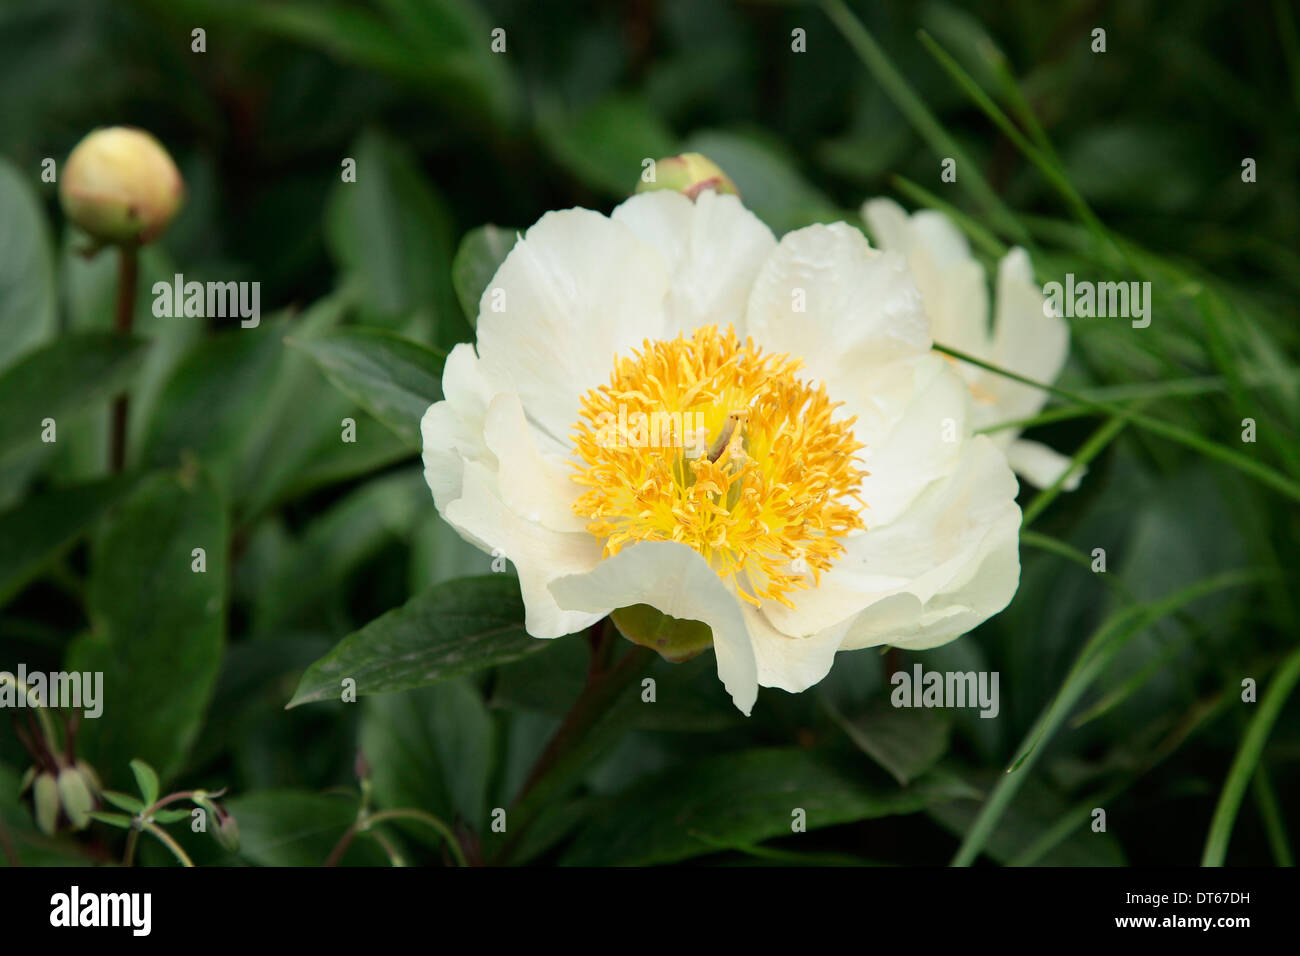 Peony Paeonia Krinkled White Single White Flower With Yellow